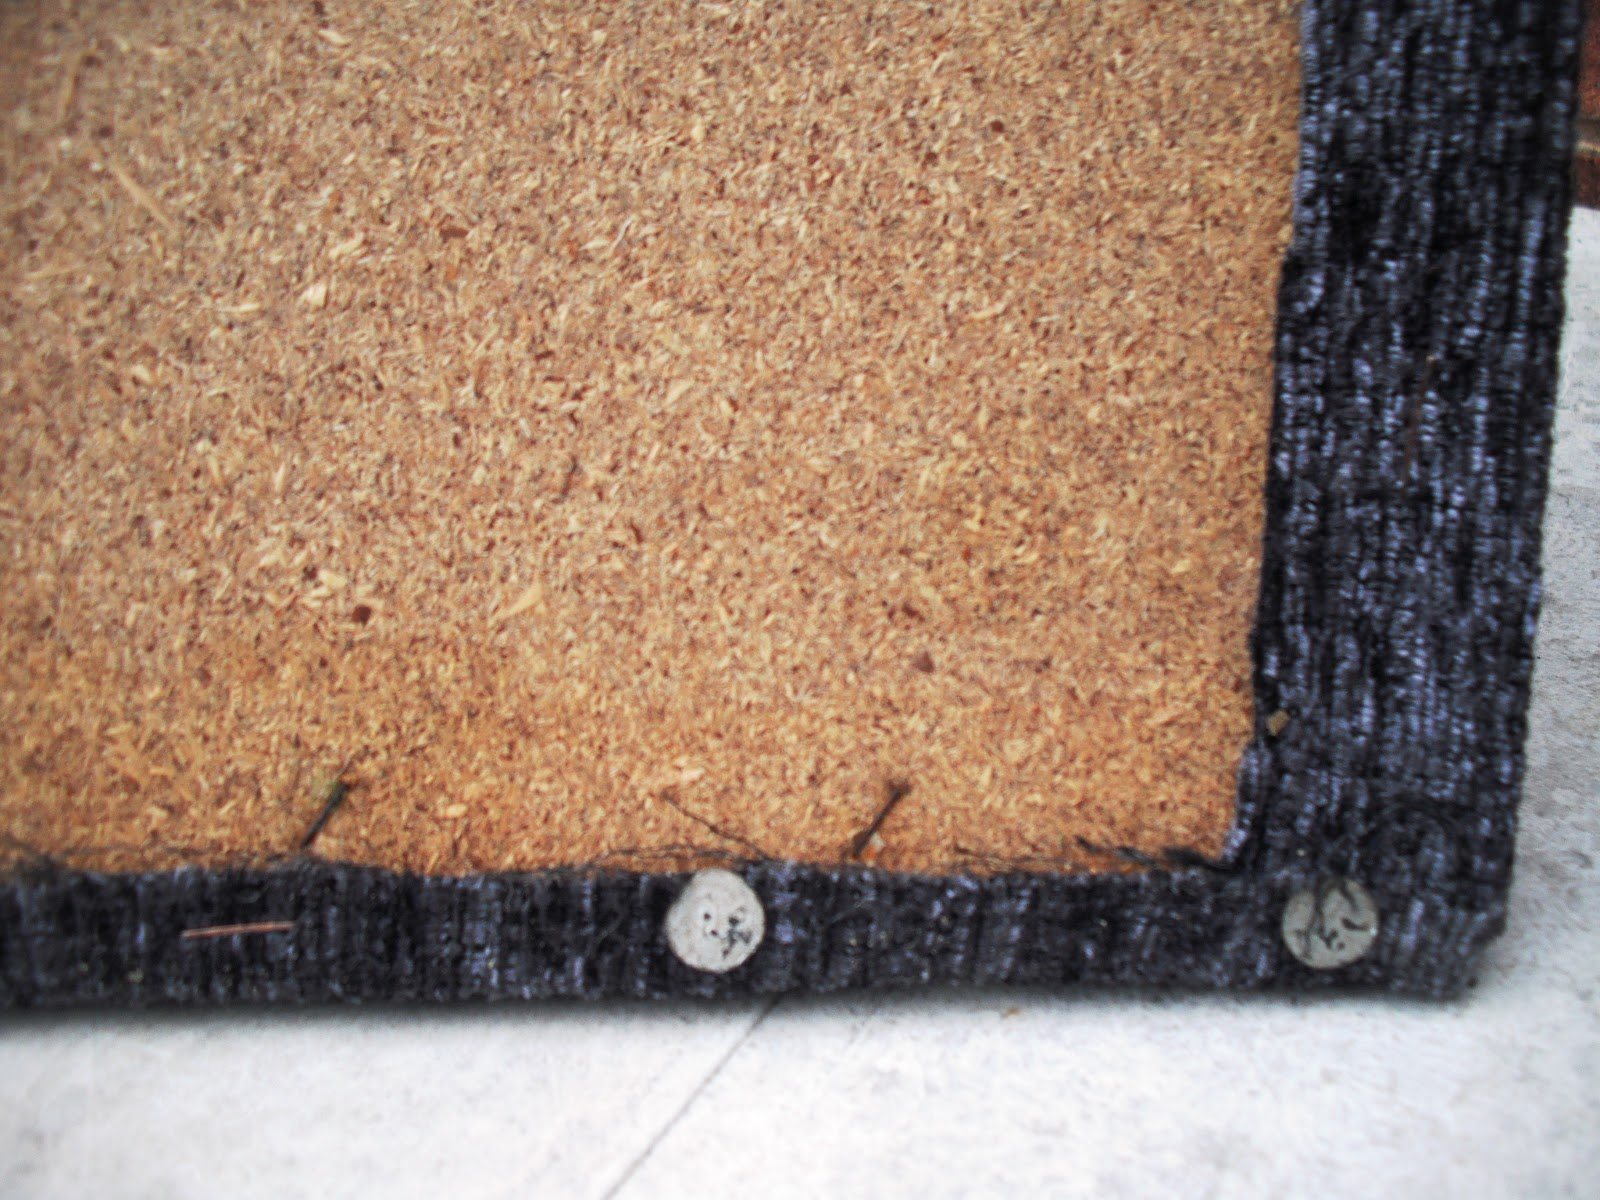 General Cat Care 2 further Wayfair Outdoor Furniture And Decor also C9205 additionally 2013 08 01 archive likewise Ware Manufacturing Brush N Scratch Scratching Post 10988 WFG1508. on cat scratching brush